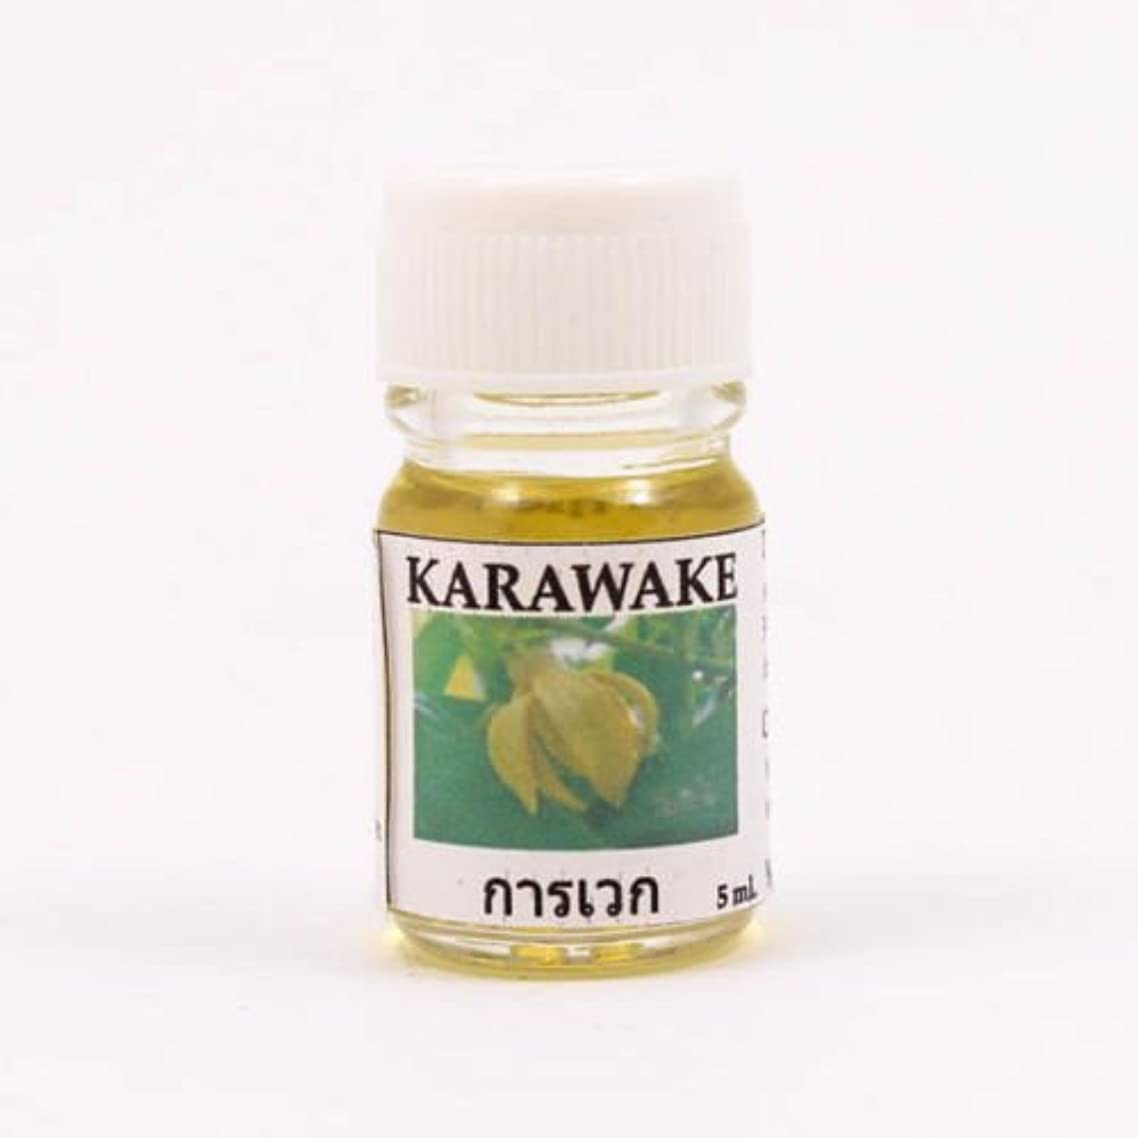 意識的連結する無数の6X Karawake Aroma Fragrance Essential Oil 5ML. cc Diffuser Burner Therapy